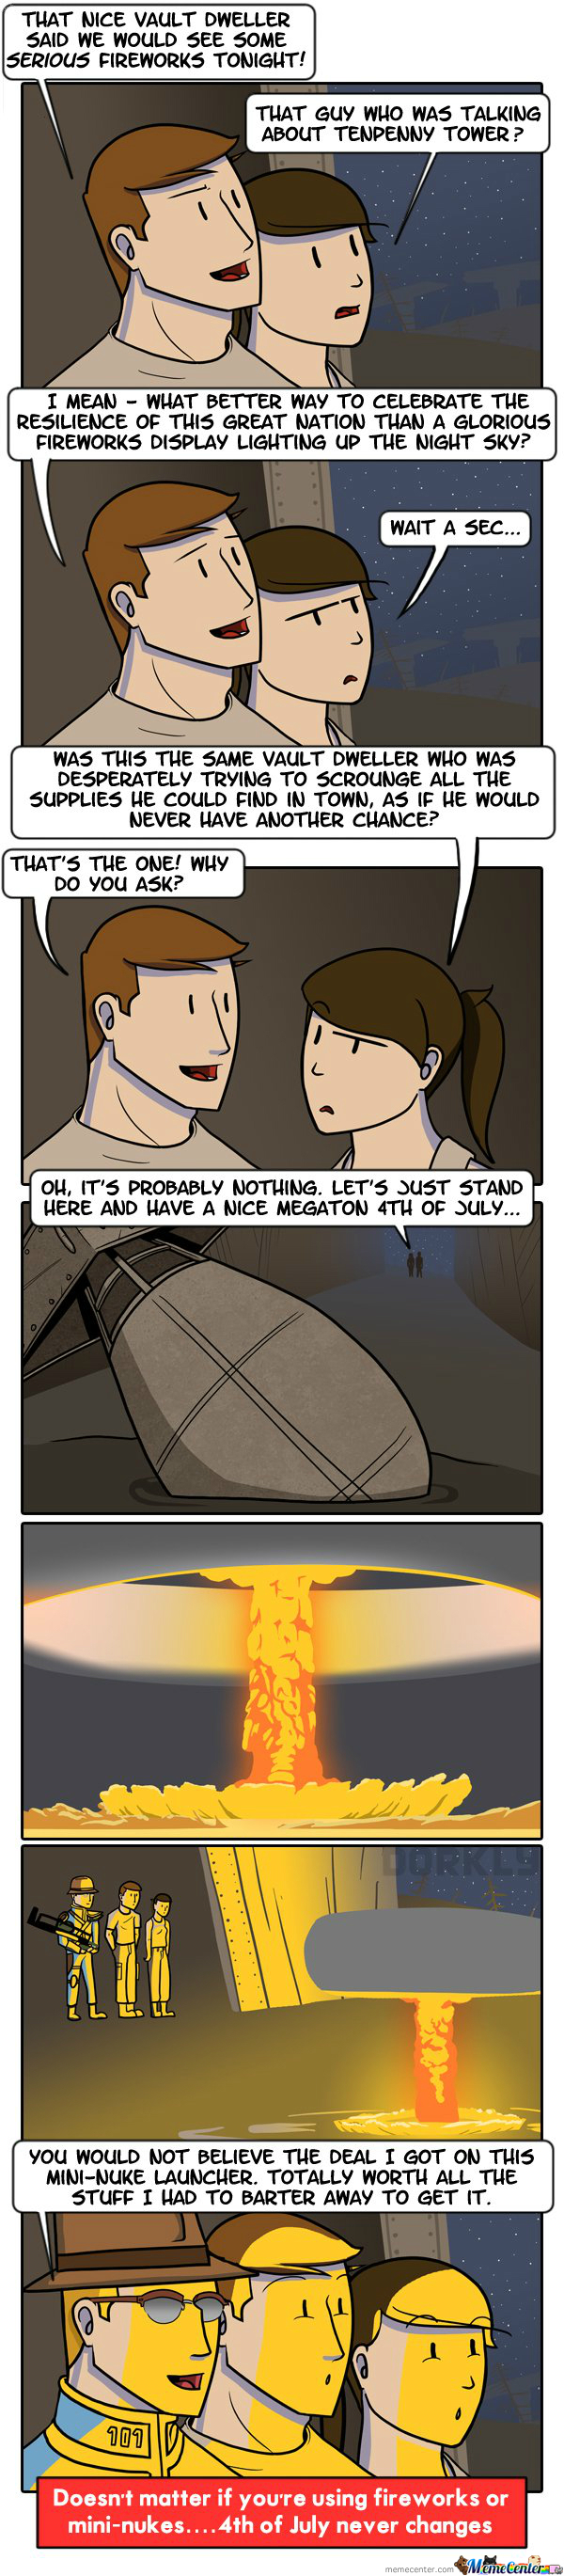 Fallout Fireworks - Dorkly